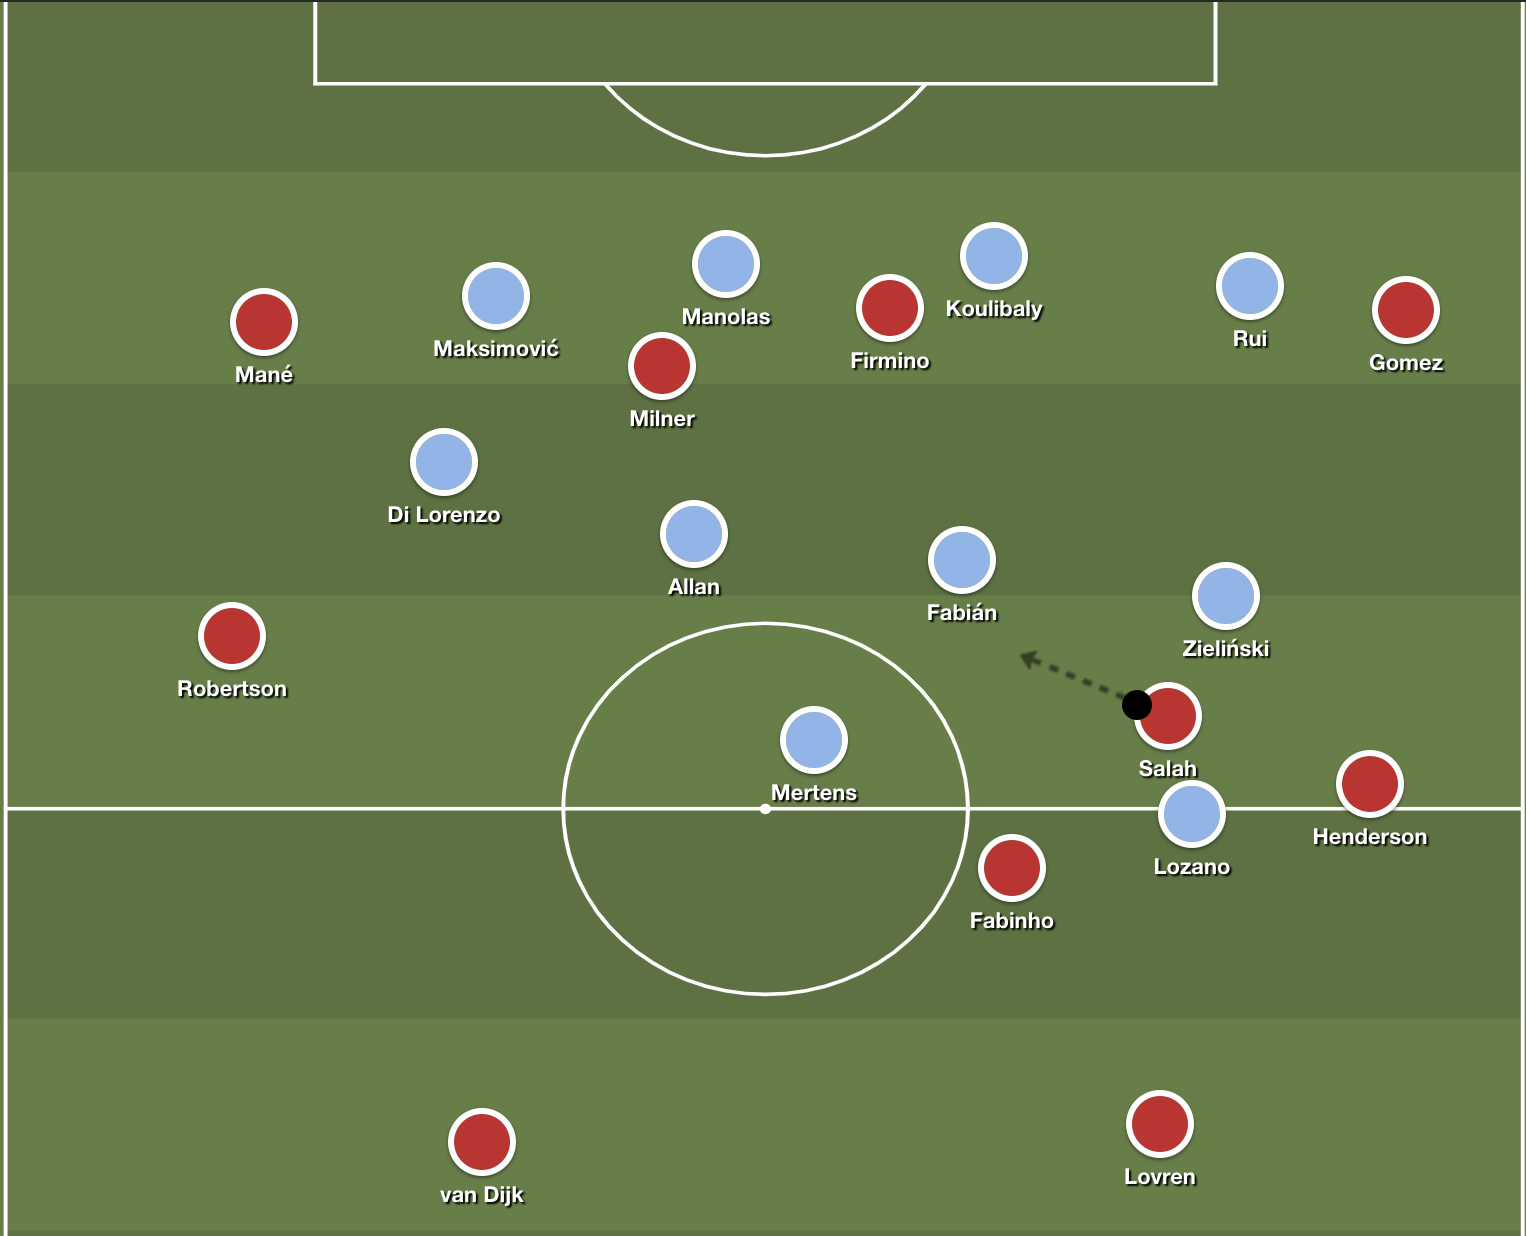 Example of Napoli's midfield staggering to help defend against transitions across from Liverpool.